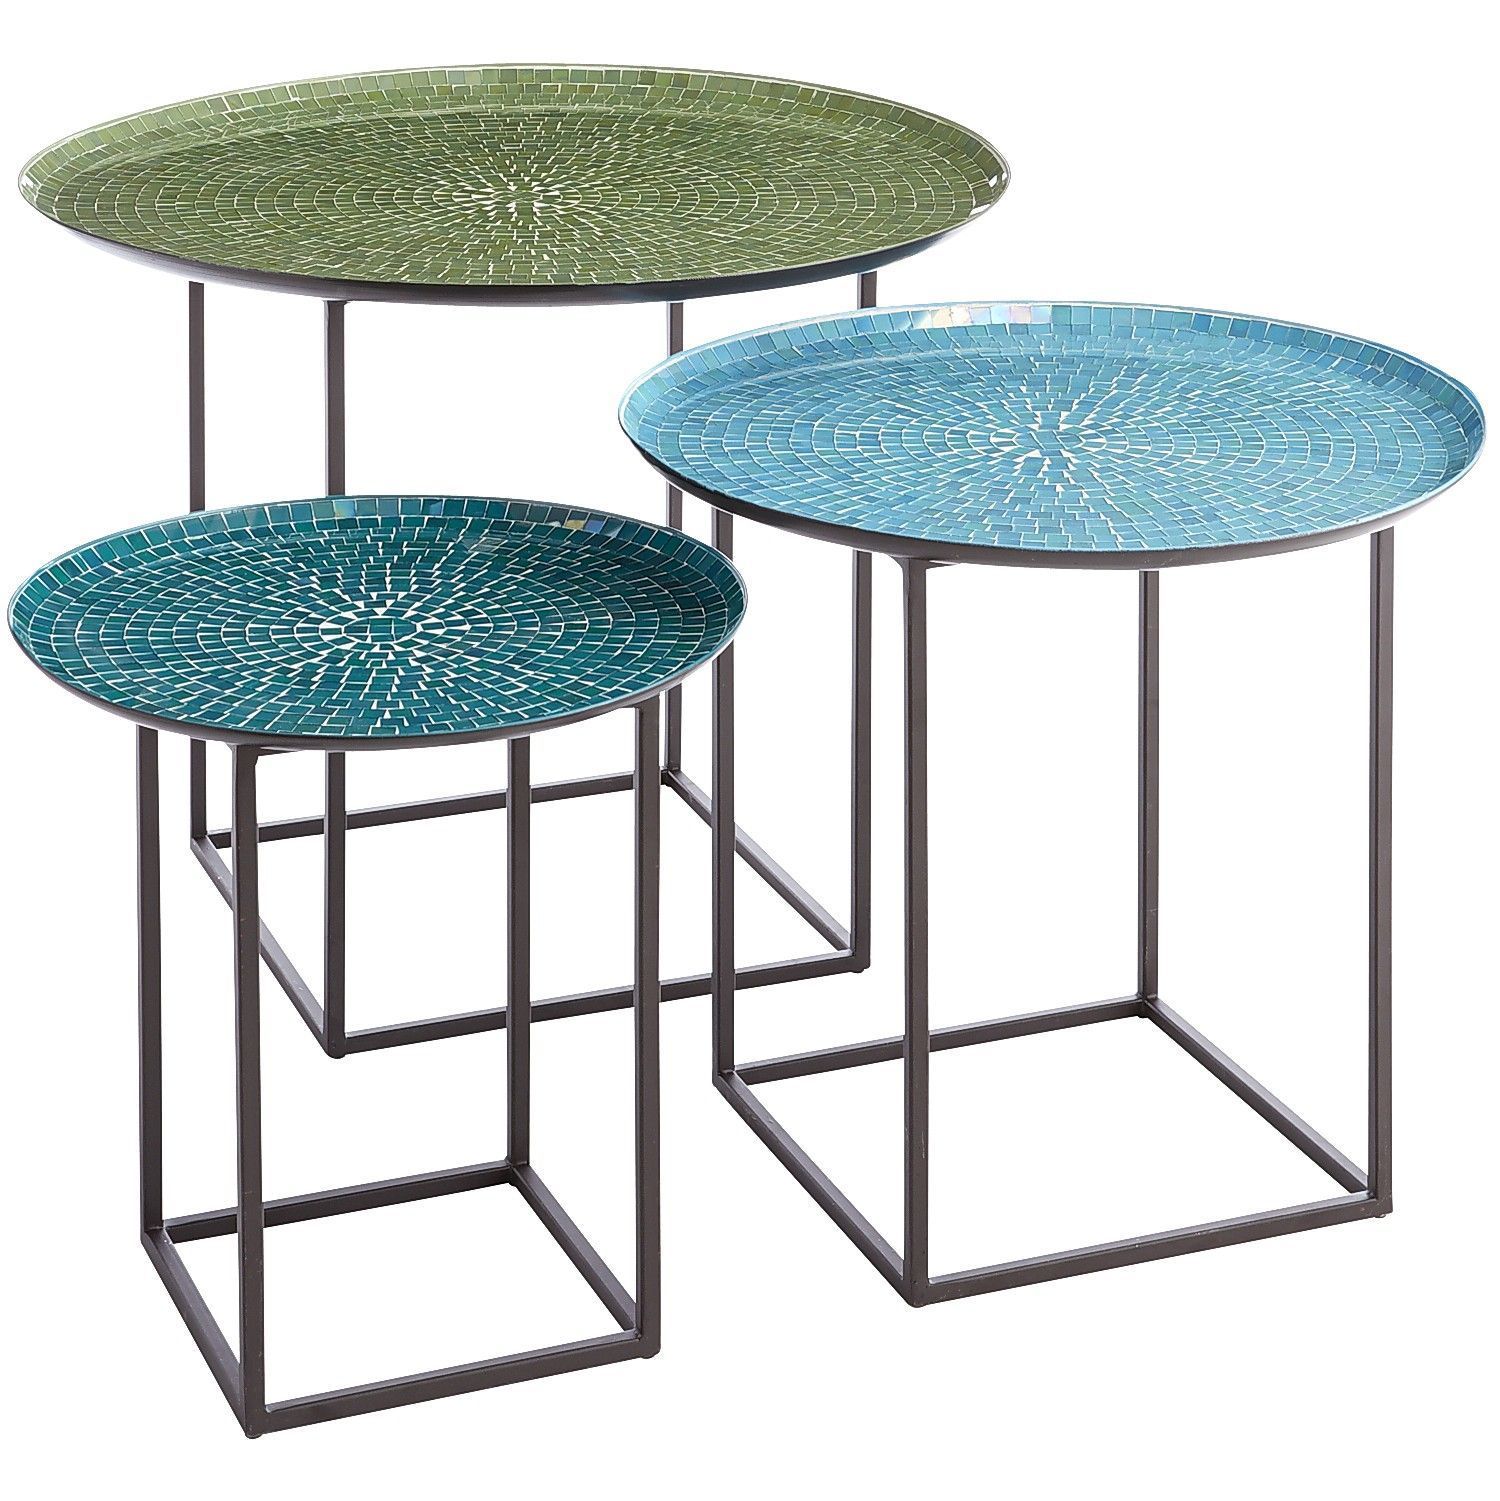 annabelle blue piece mosaic coffee table set home improvement outdoor side square patio kirklands bar stools espresso wood end tables hampton bay wicker furniture yellow lamp